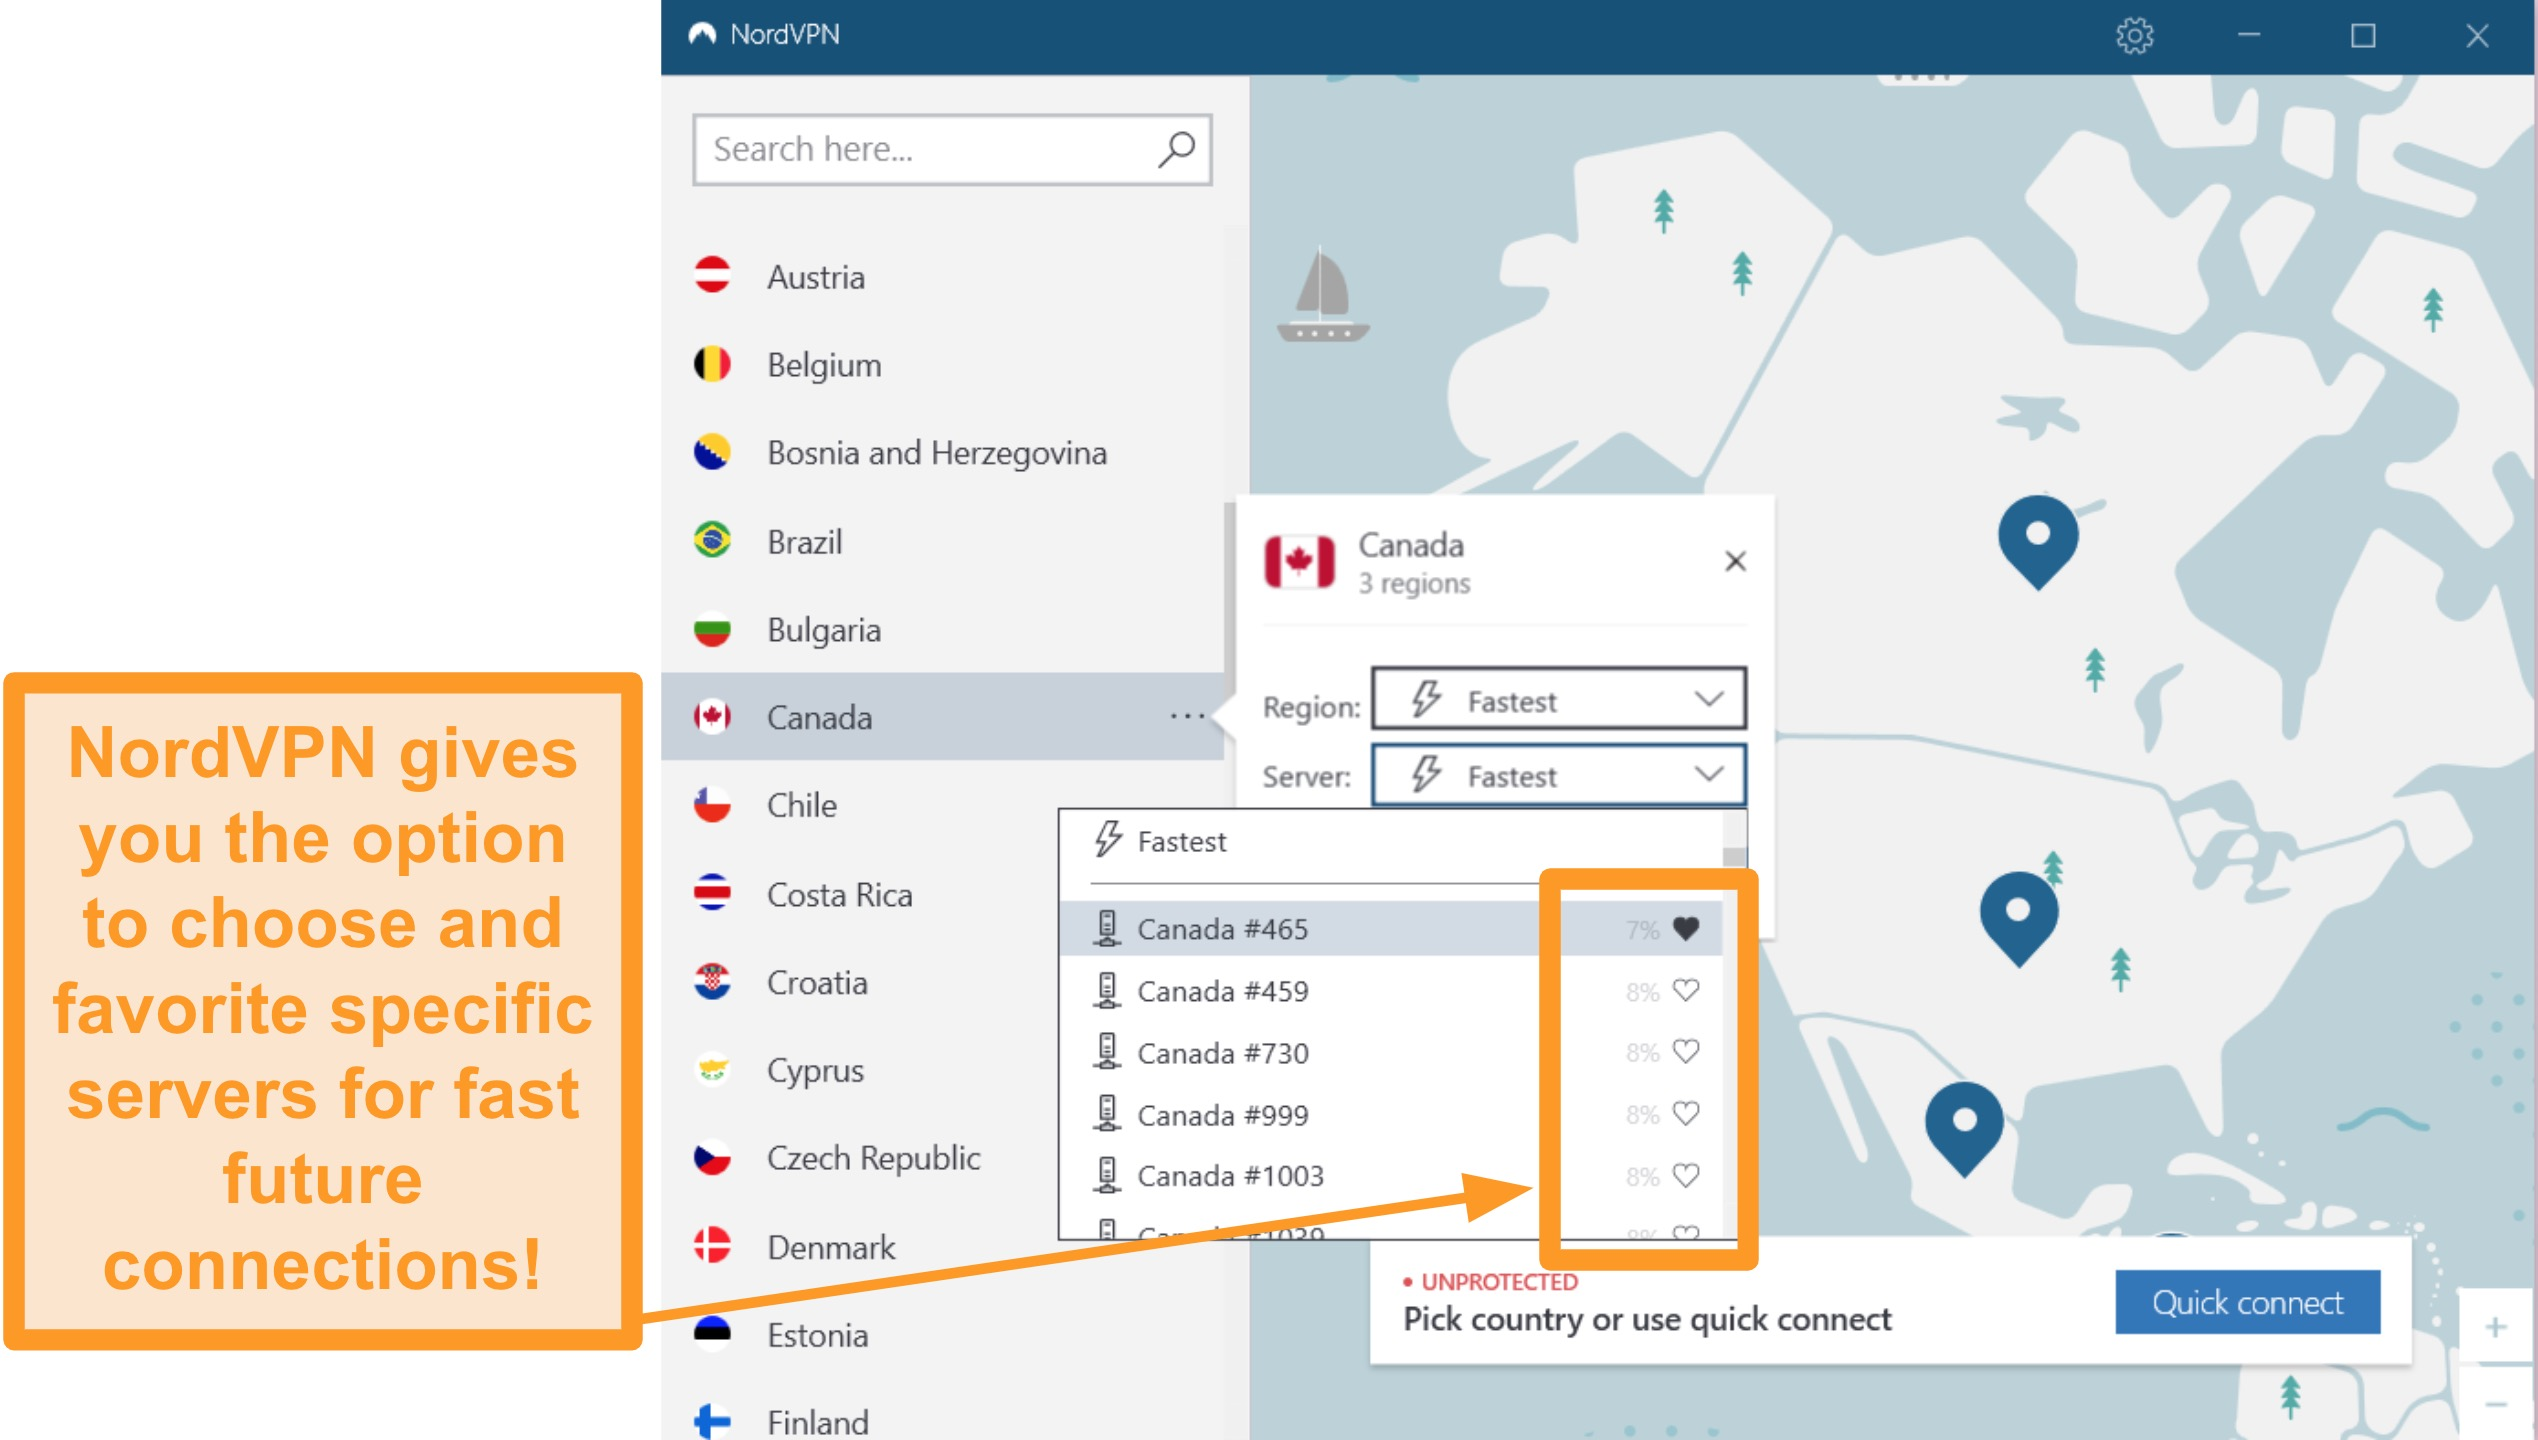 Screenshot of NordVPN interface and individual server locations.